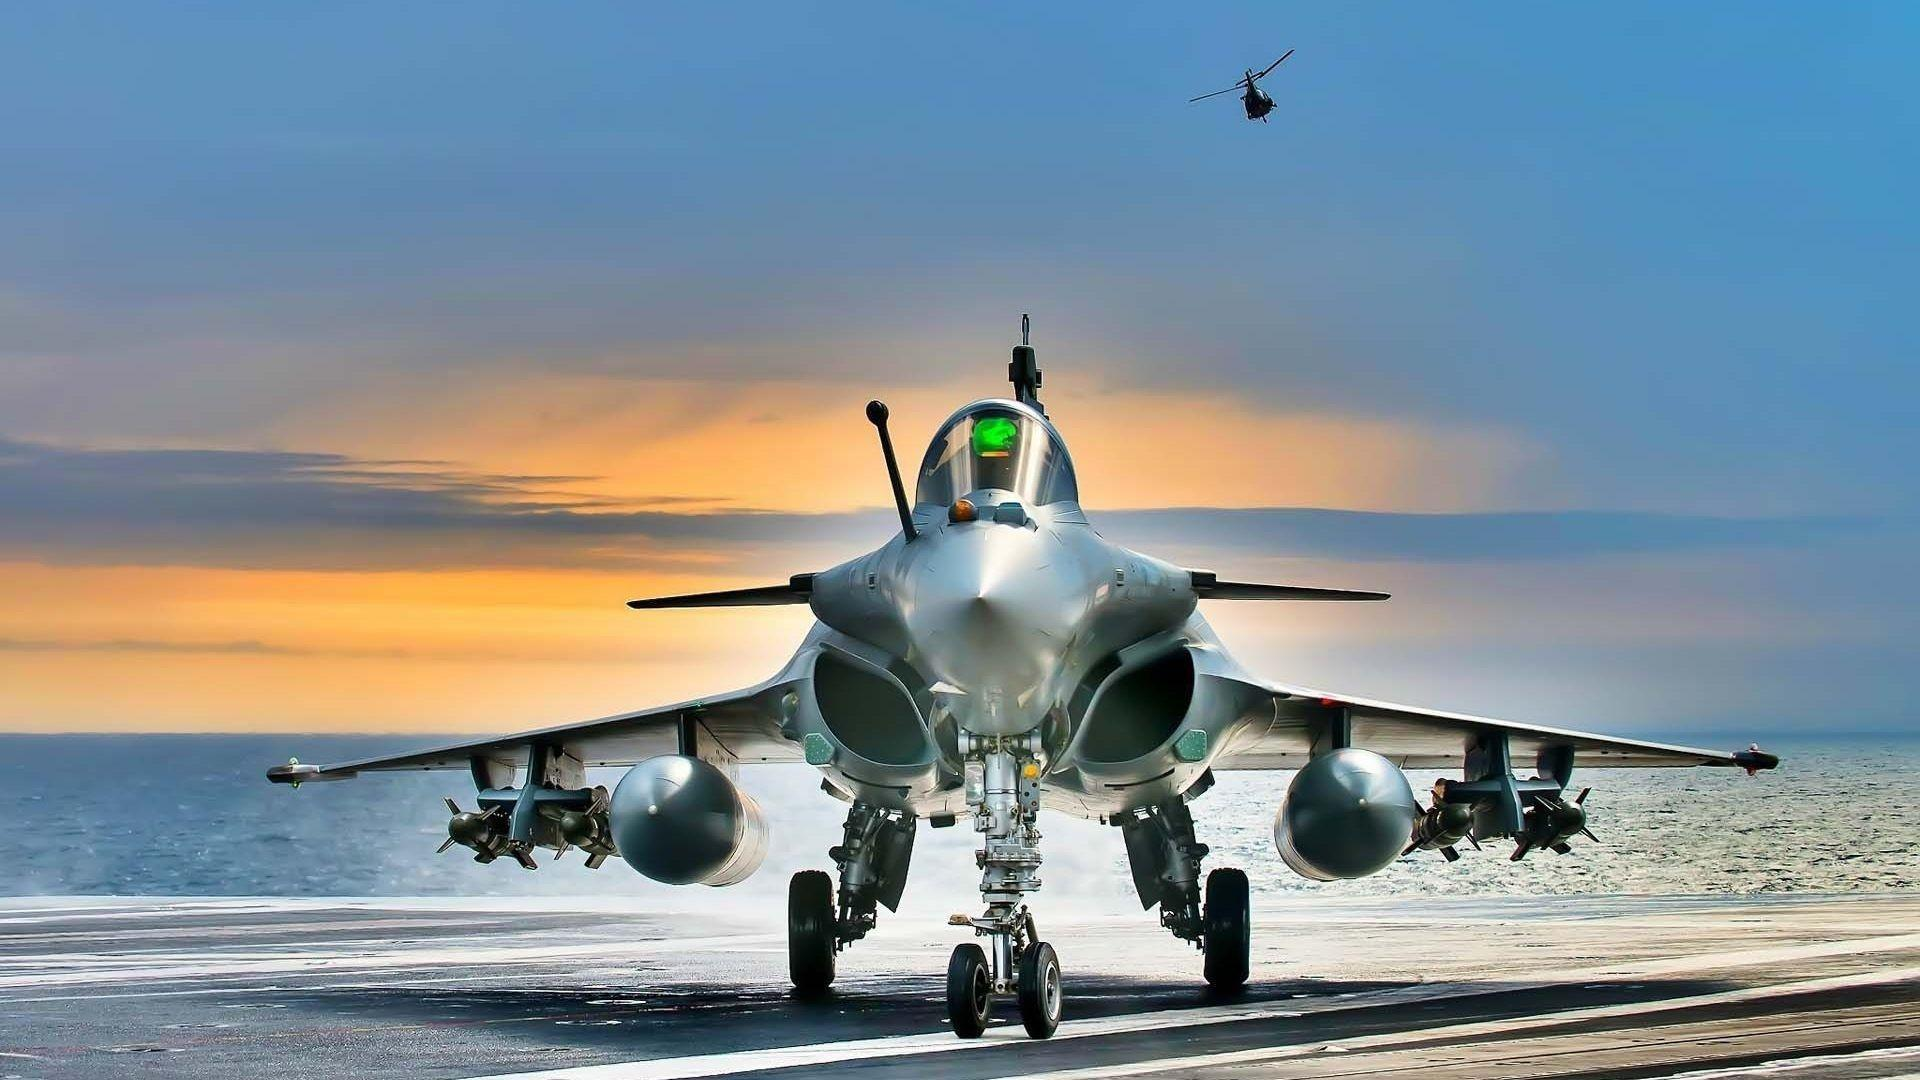 Commando fighter airplane wallpapers